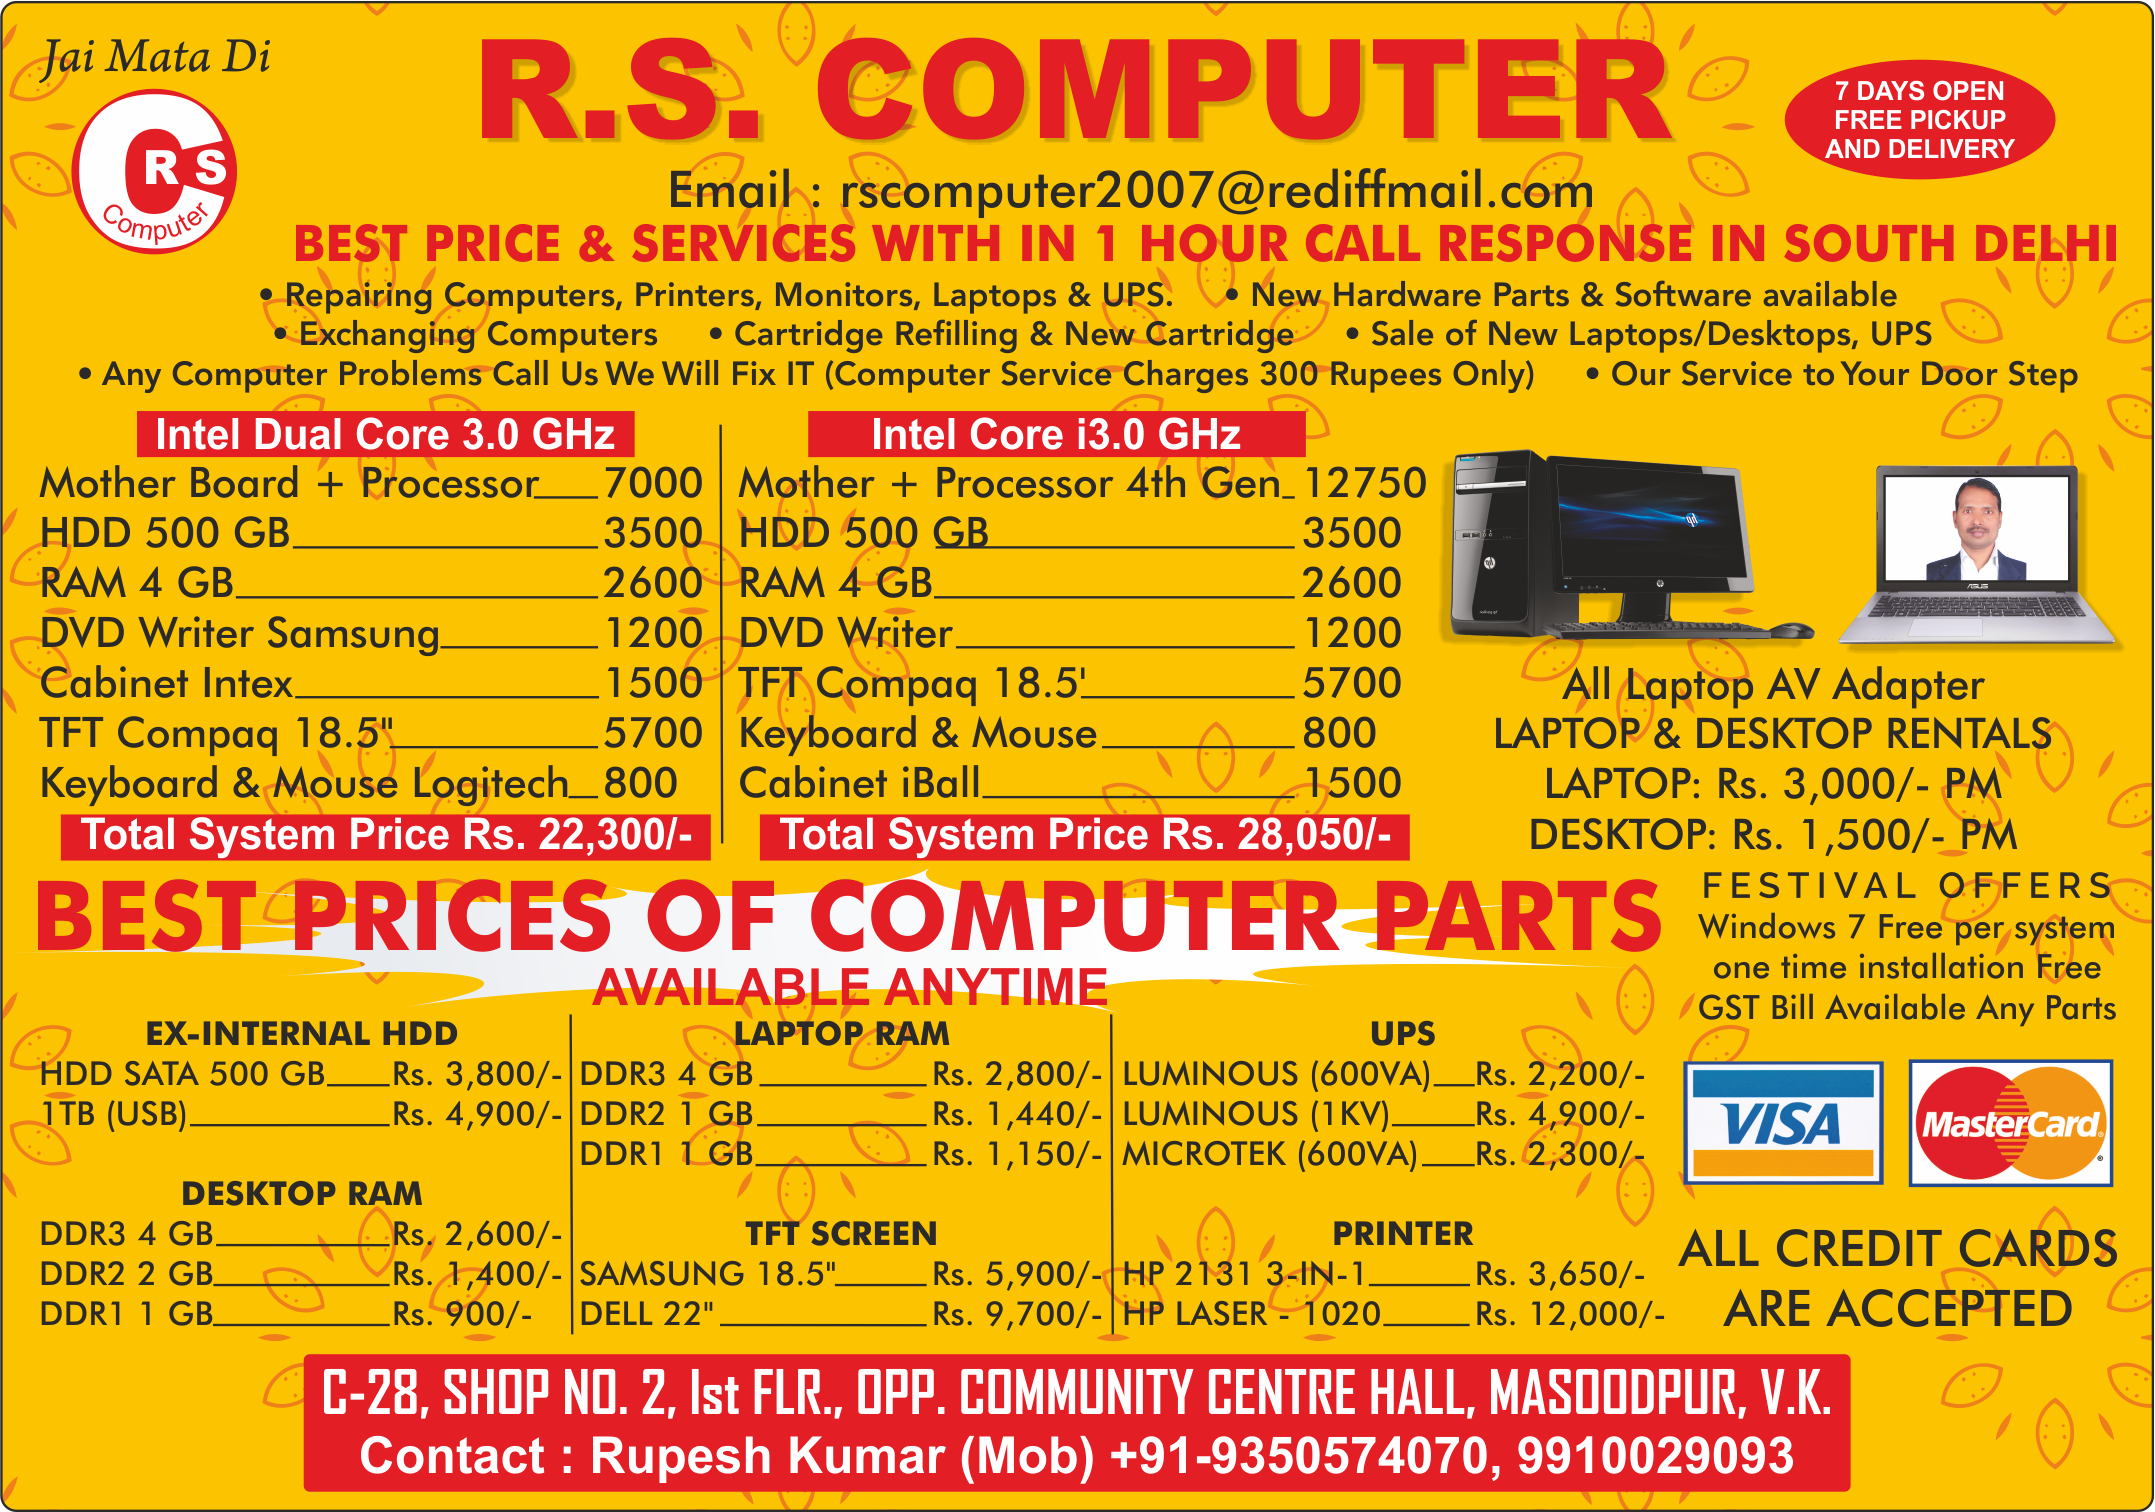 R.S. COMPUTER